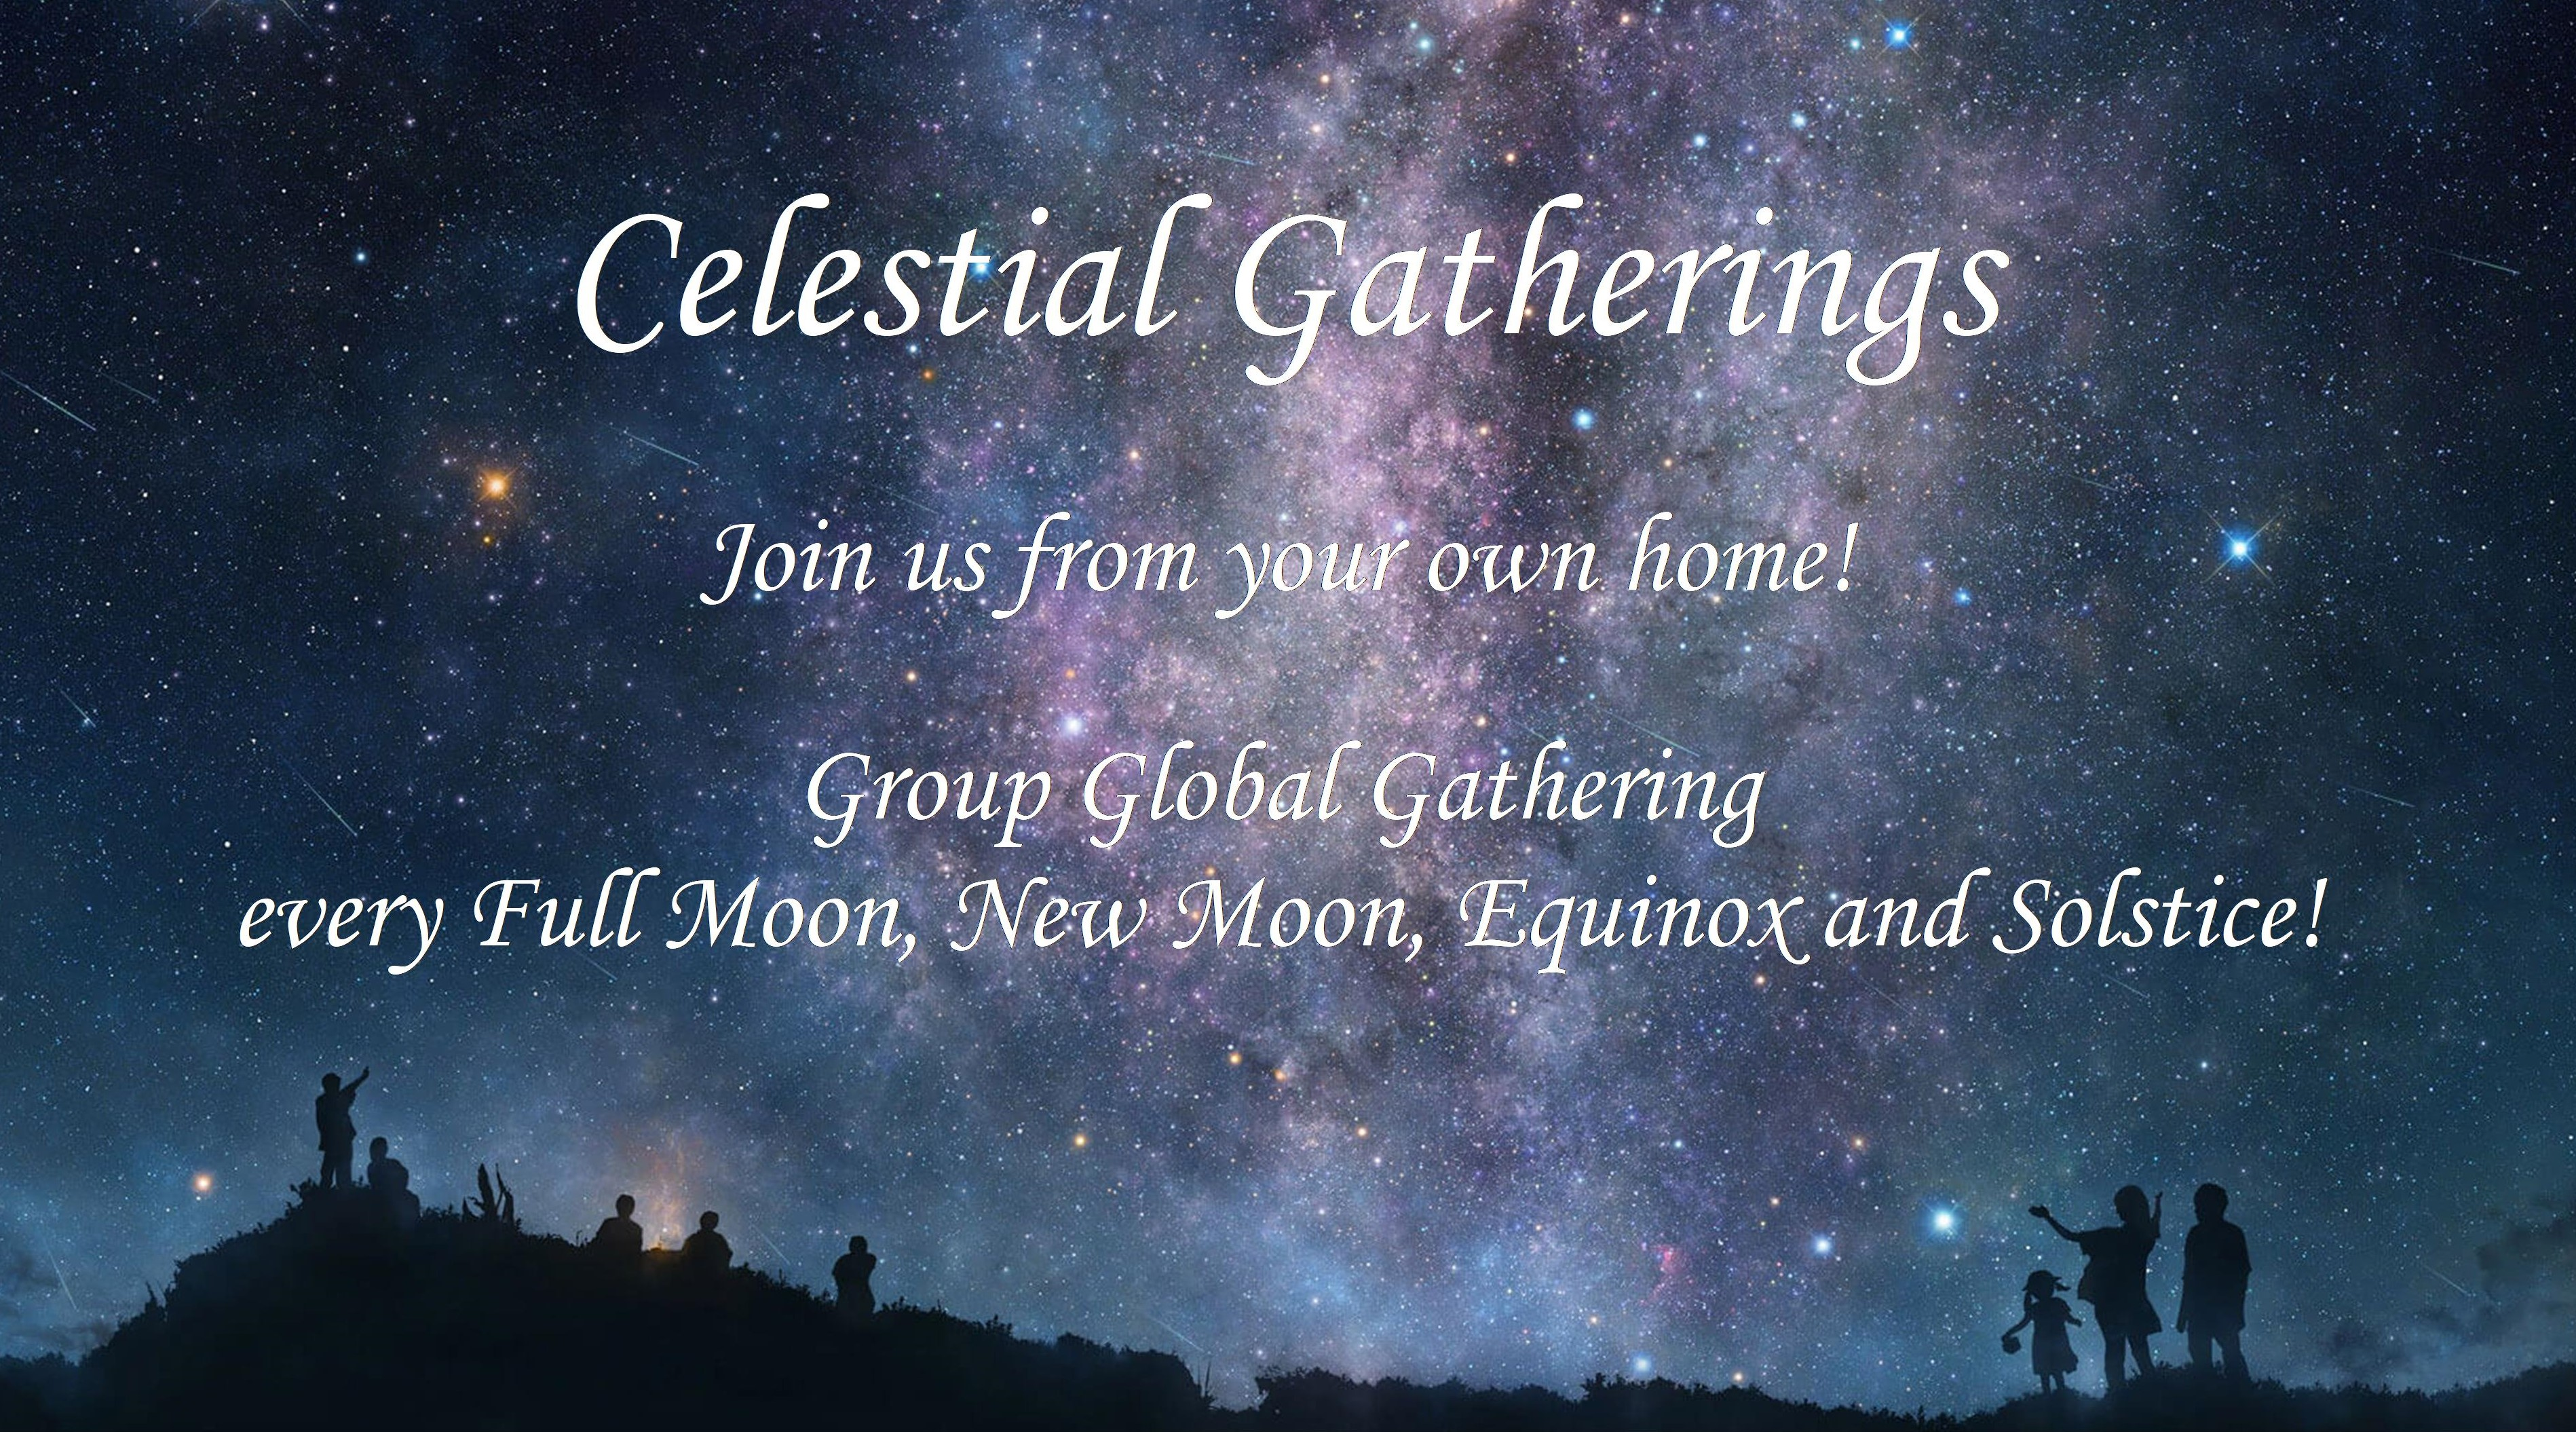 Celestial Gathering Banner with Night Sky Background